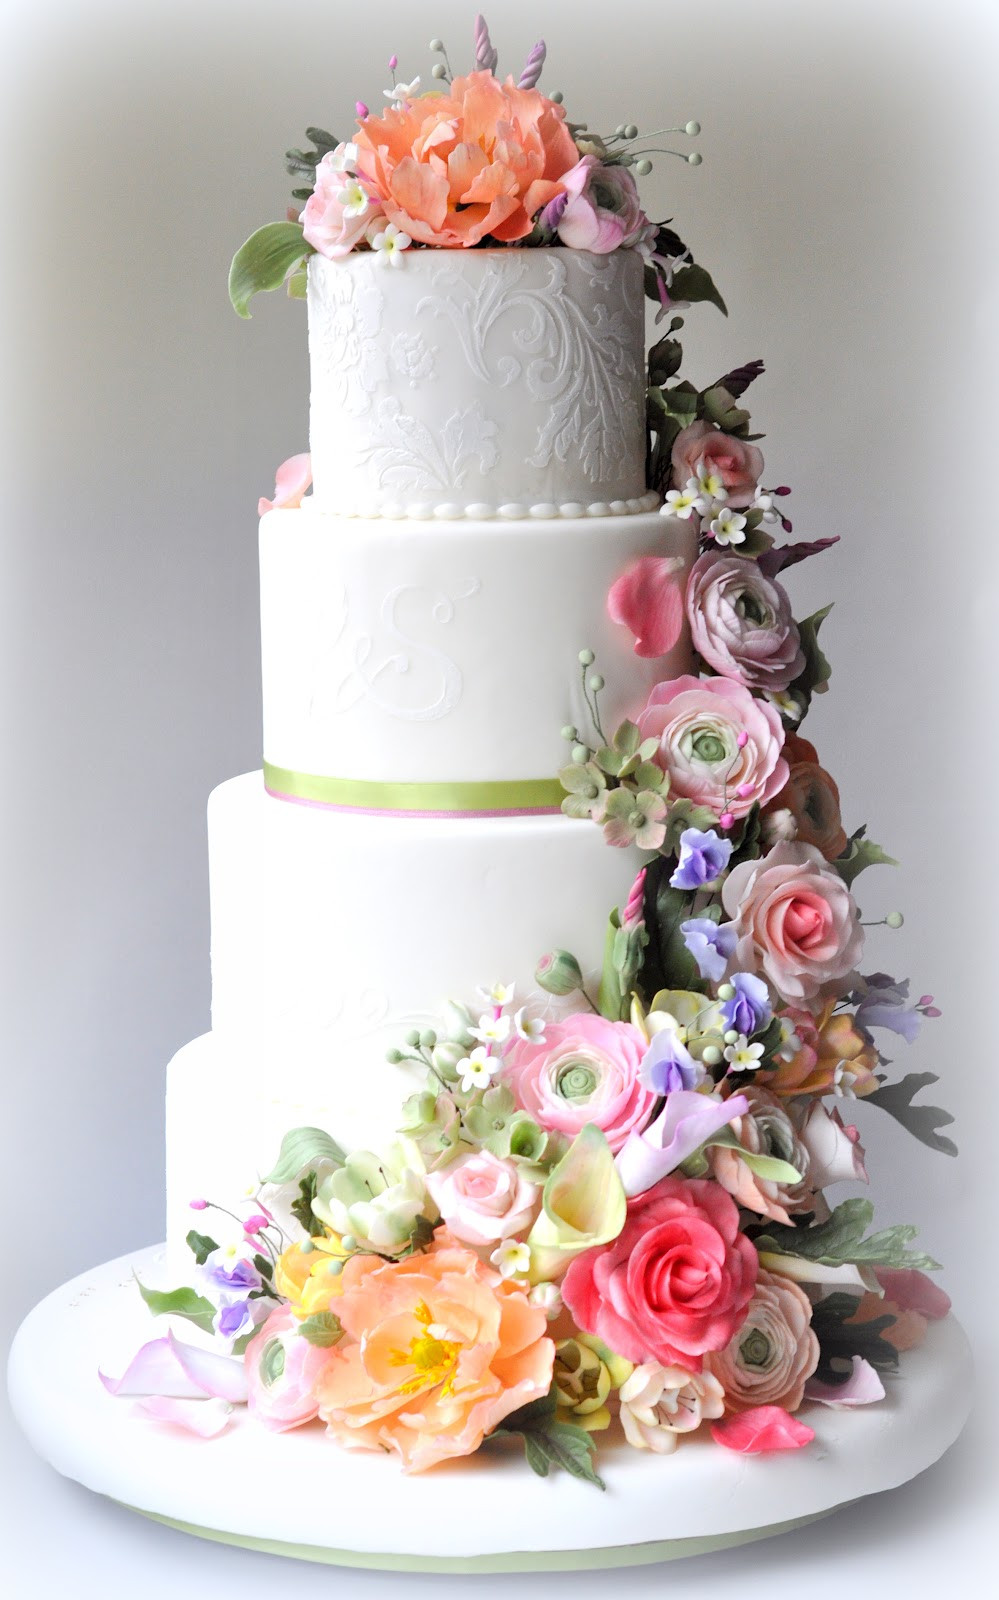 Wedding Cakes With Roses  7 Gorgeous Reasons to Fall in Love With Spring Weddings